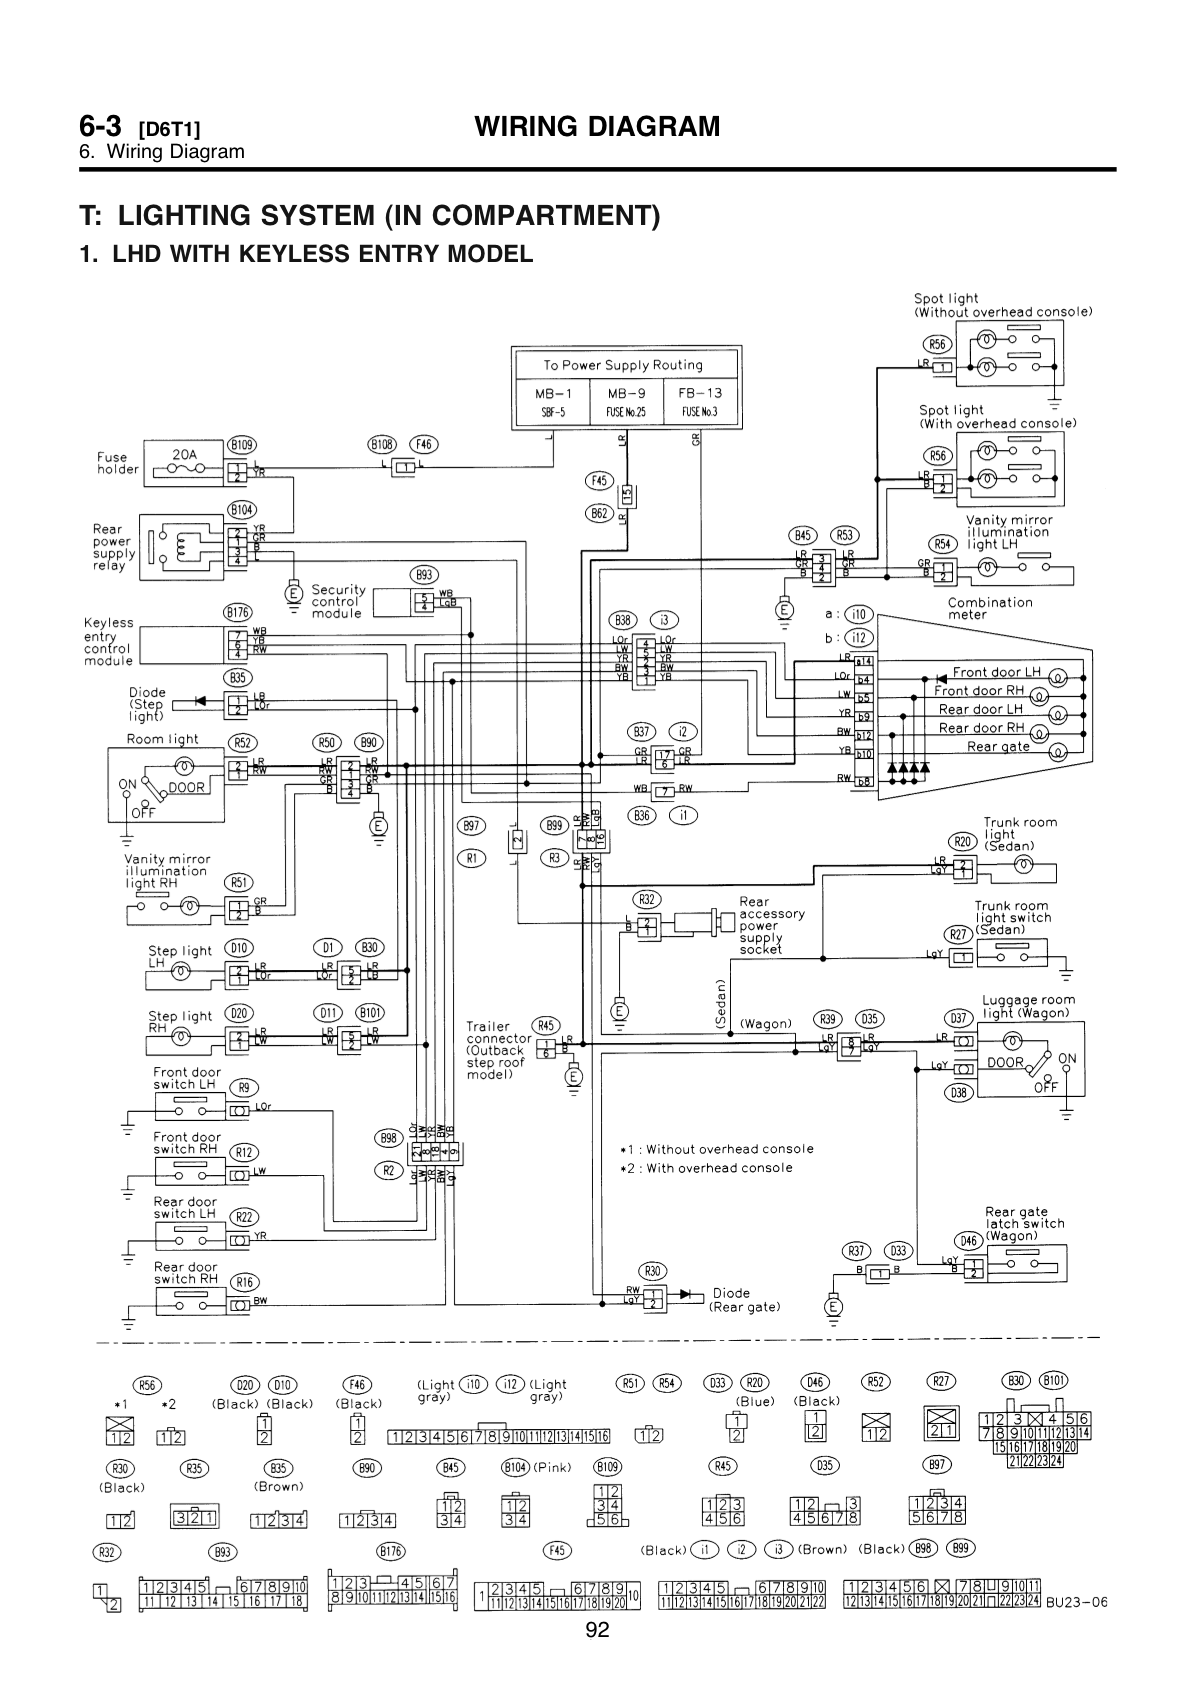 2005 Subaru Legacy Wiring Diagram Schematics 1993 Lincoln Town Car Radio Free Picture 1992 Books Of U2022 Gmc Yukon Xl